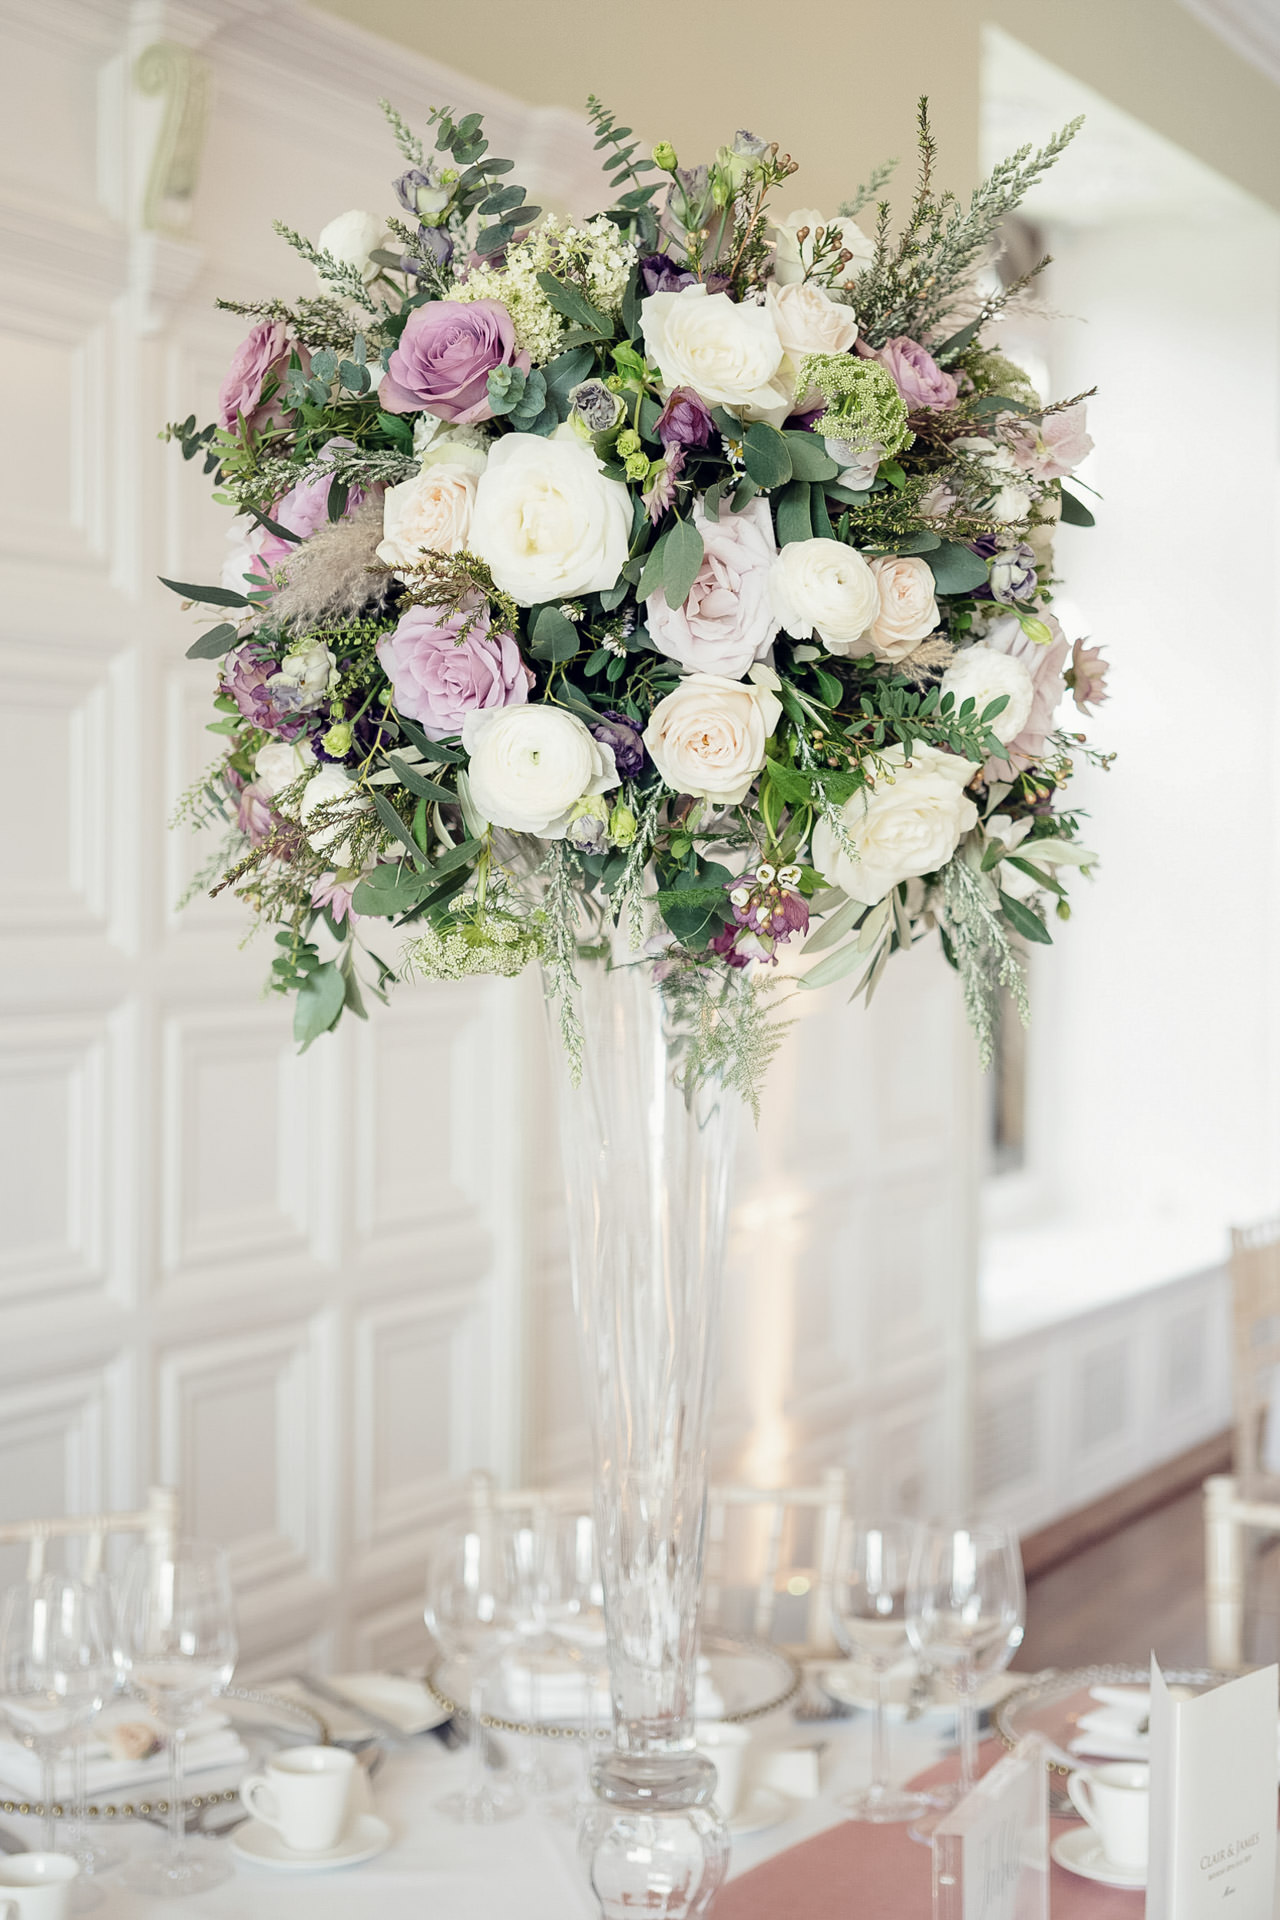 Luscious tall table designs at Hengrave Hall